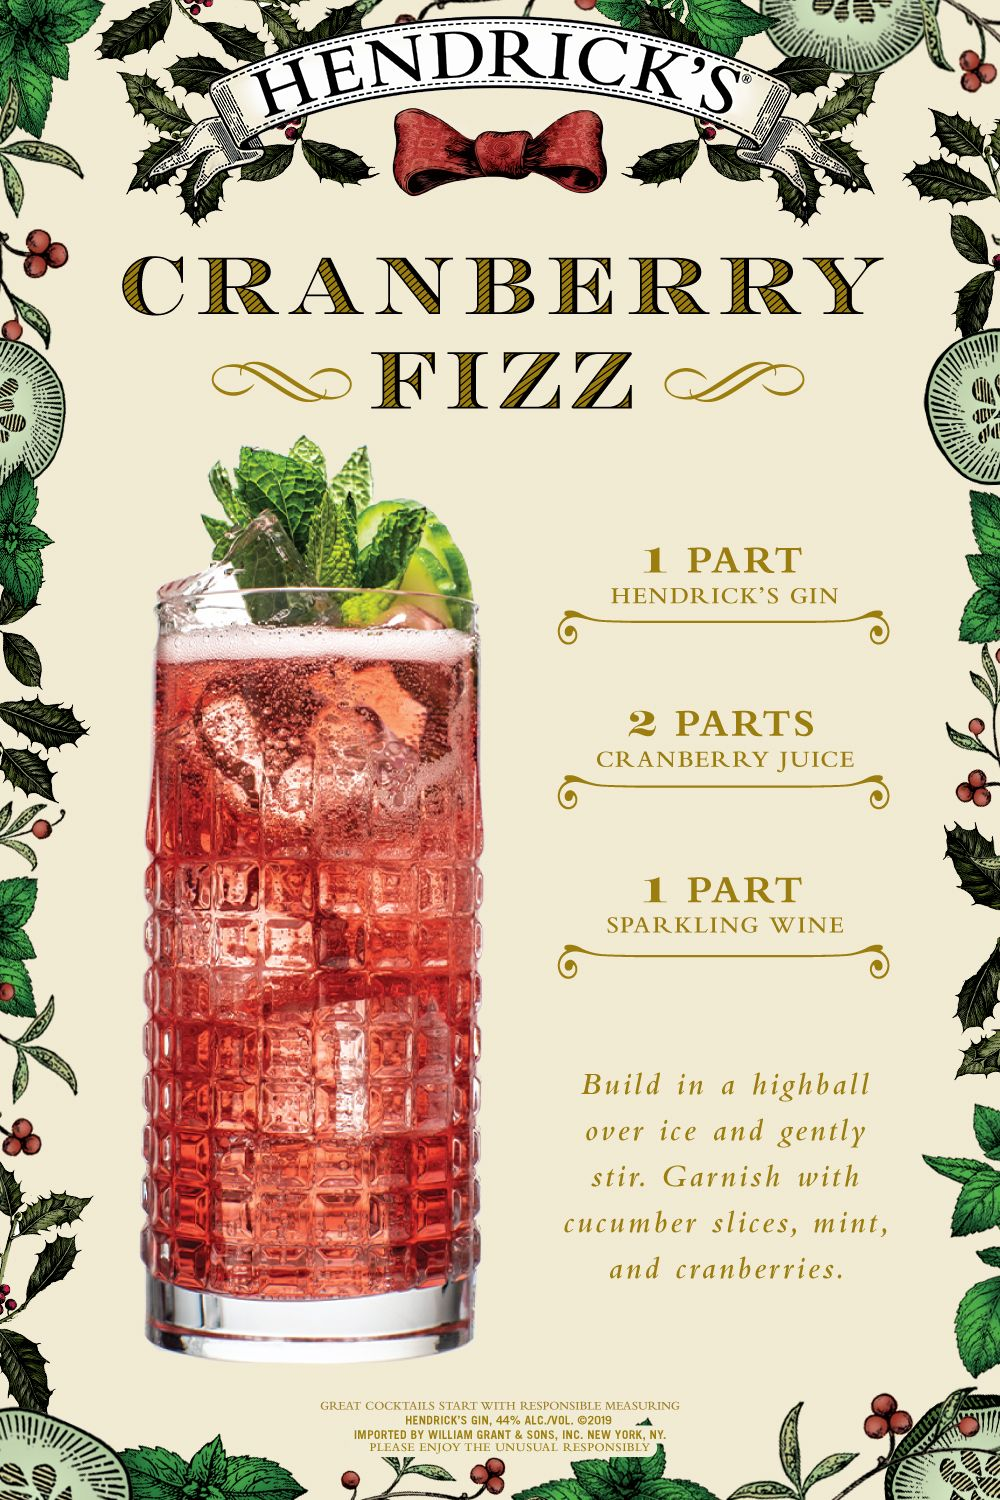 Cranberry Fizz Recipe Cranberry Fizz Drinks Alcohol Recipes Mixed Drinks Recipes